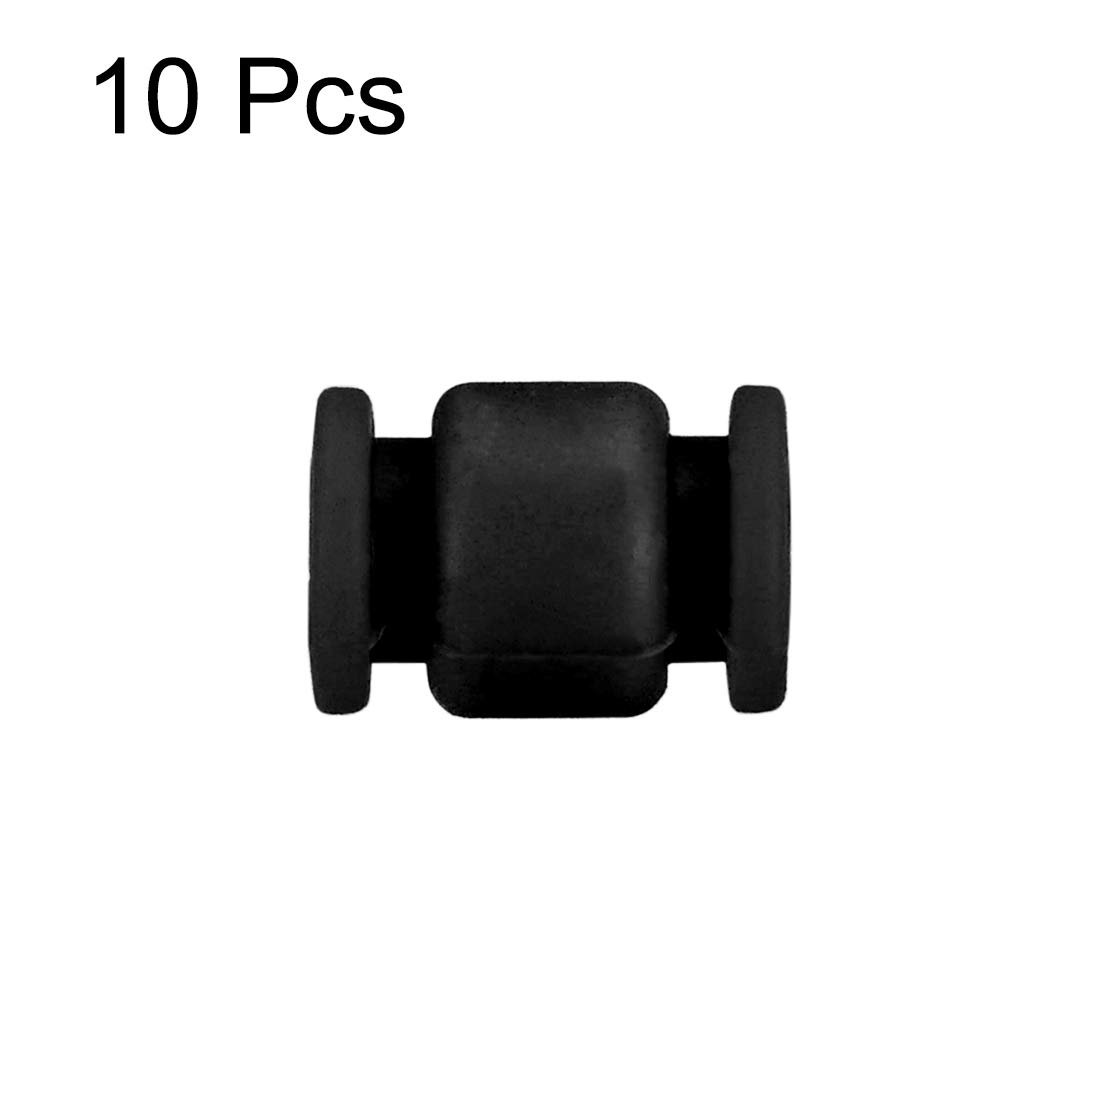 sourcing map RC Anti Vibration Rubber Balls 10PCS for Fright Controller//Gimbal//Webcam//QAV250//ZMR250 Black